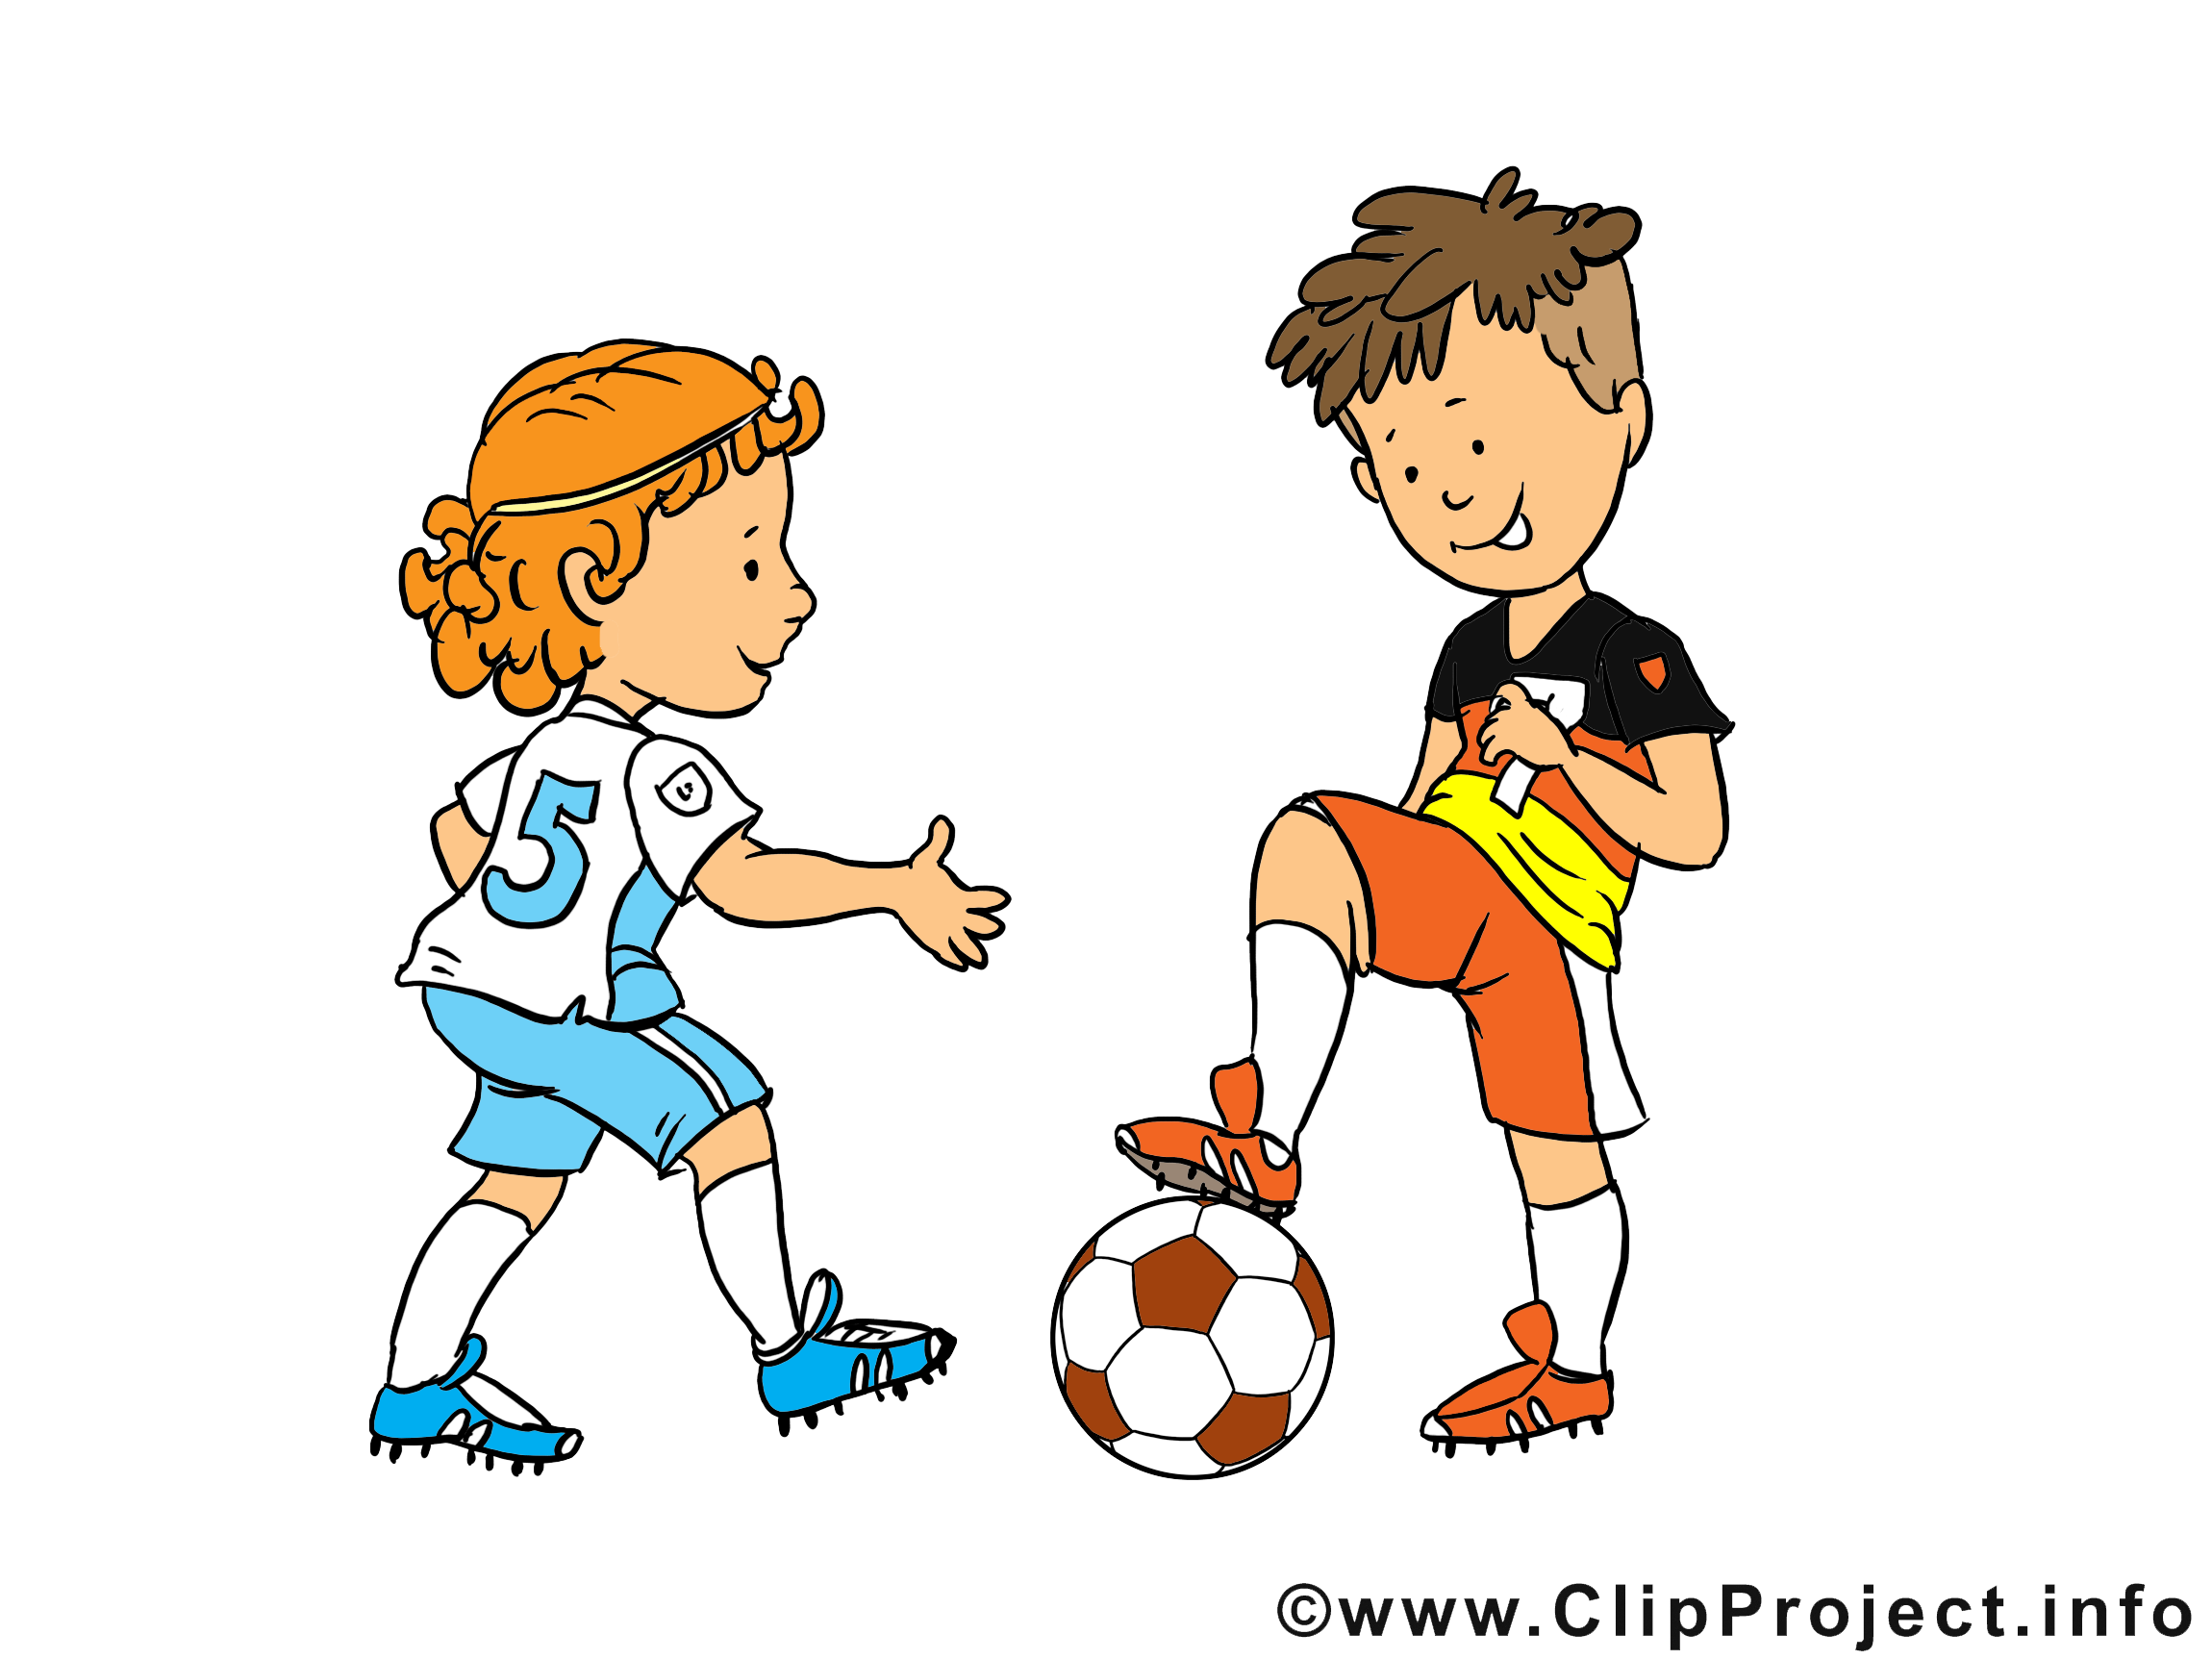 Enfants cliparts gratuis - Football images